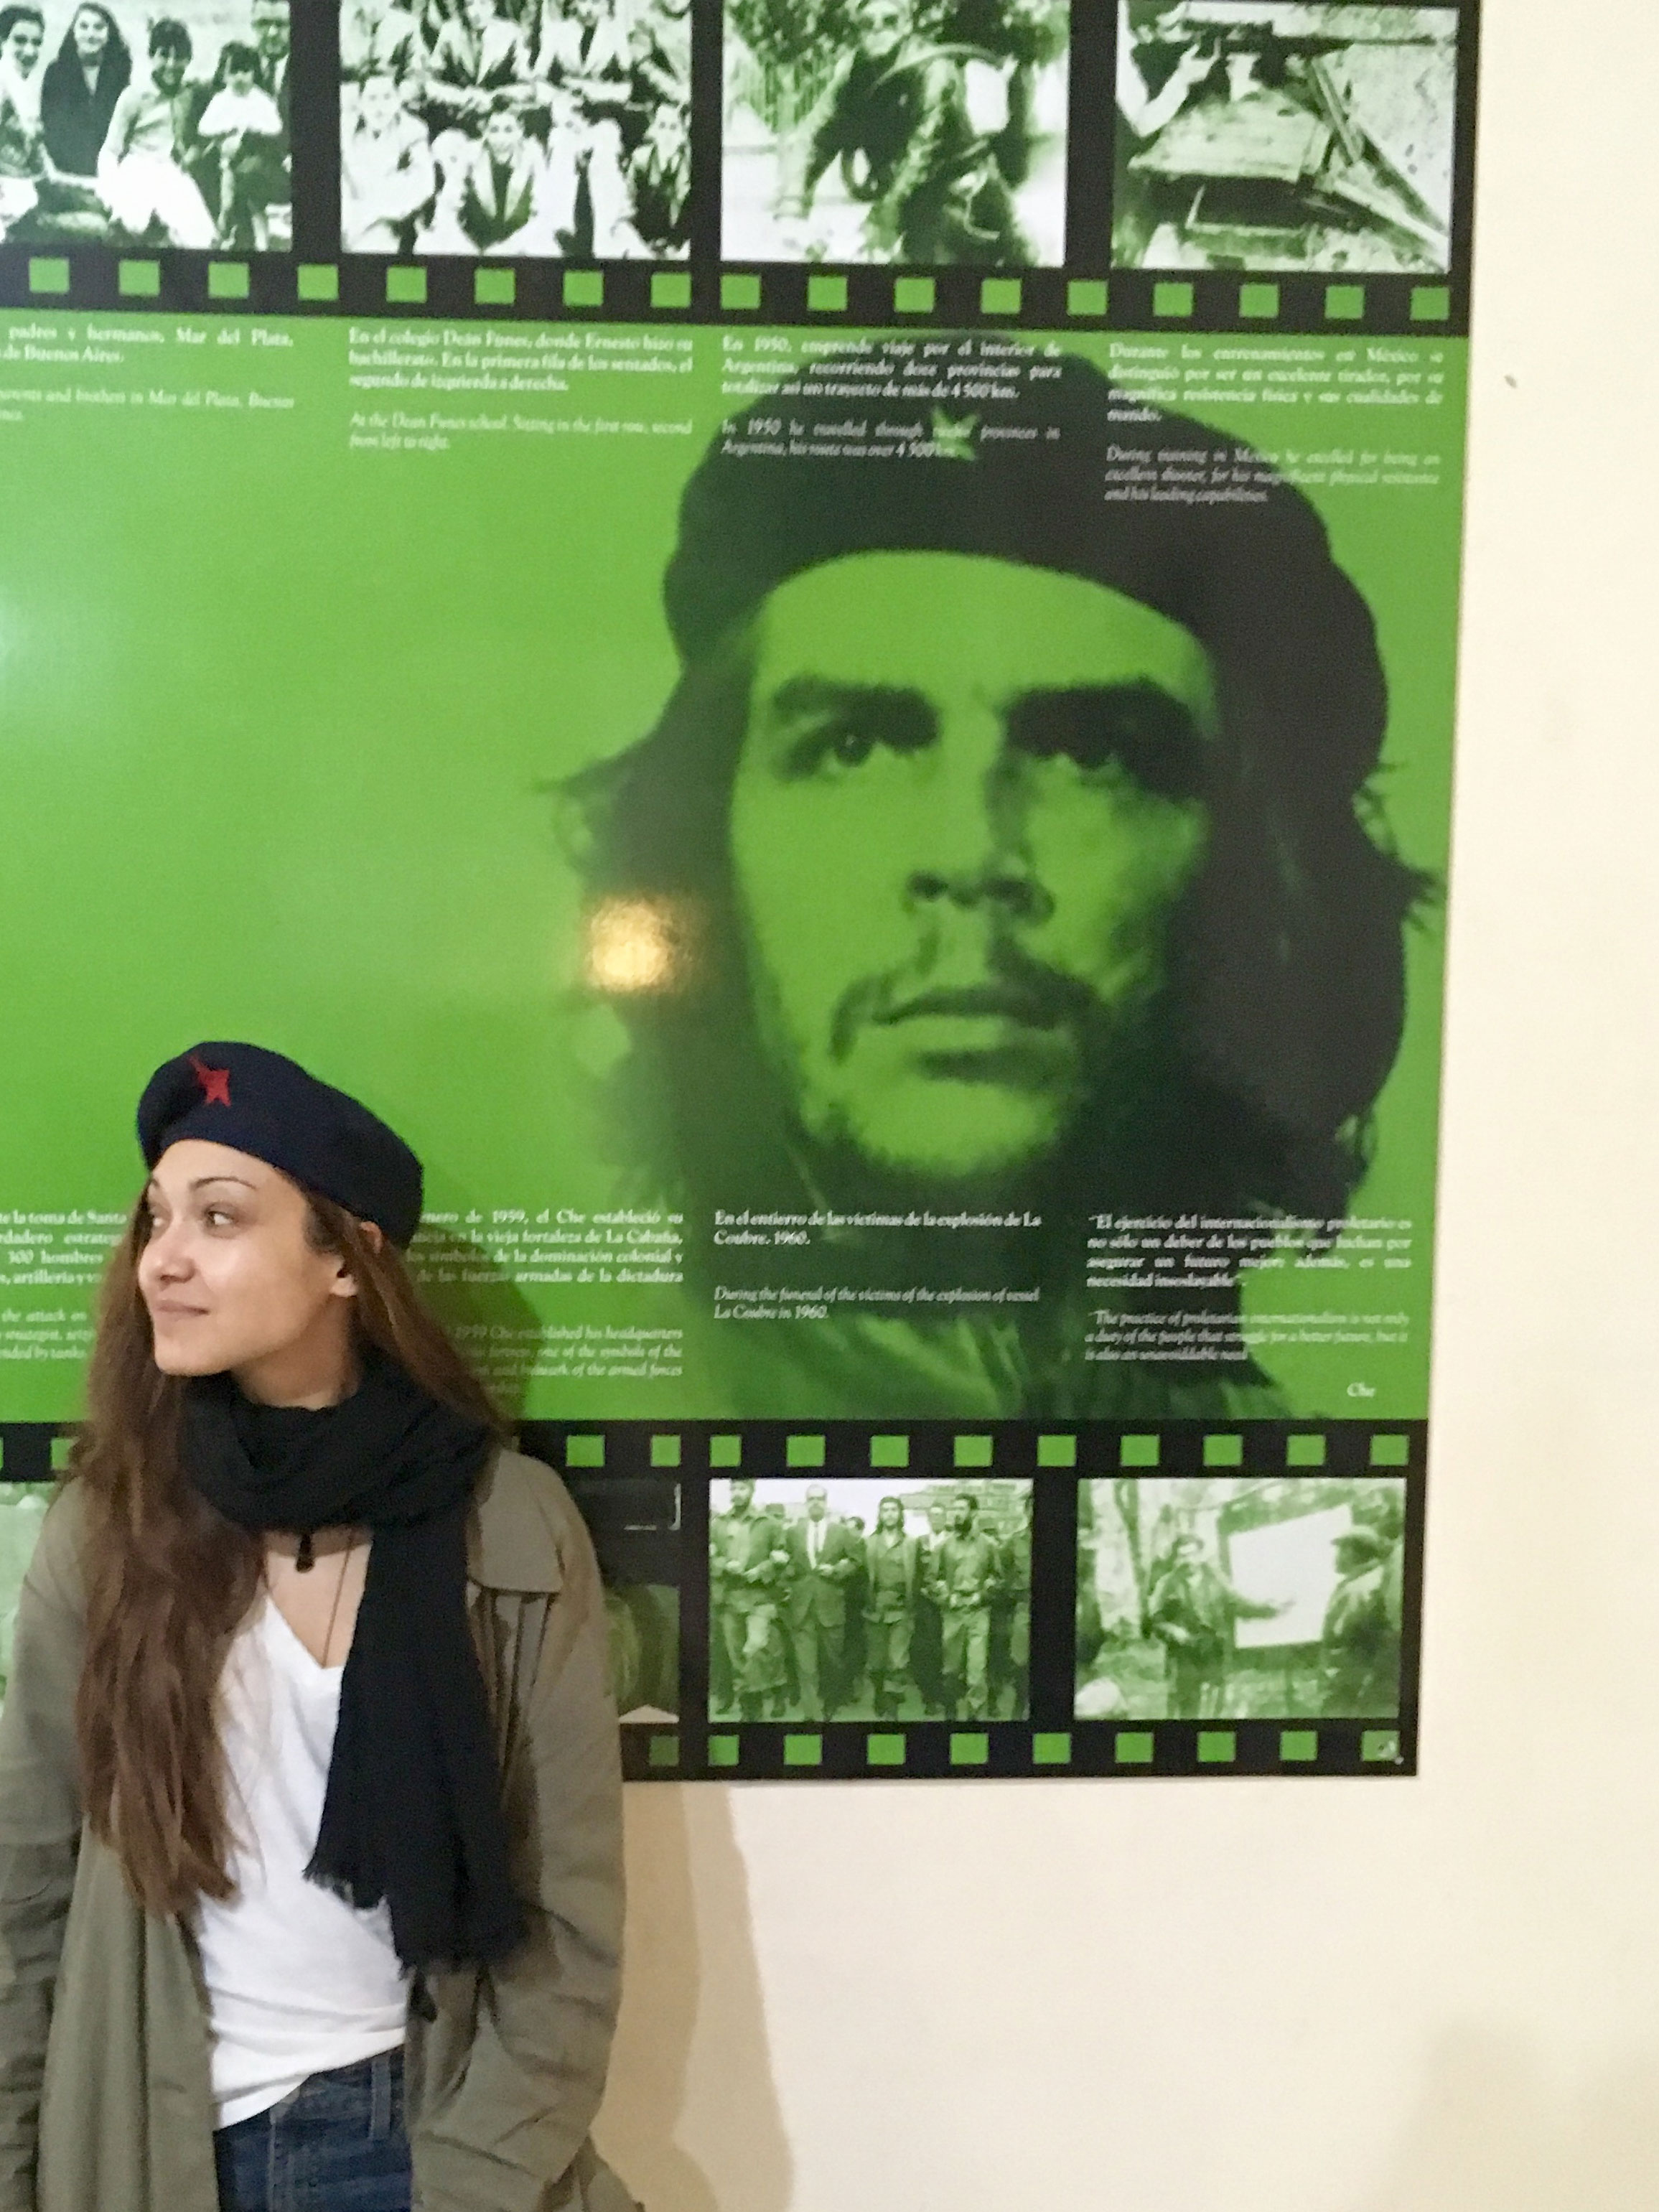 Daniela with Che at the Revolutionary Museum.